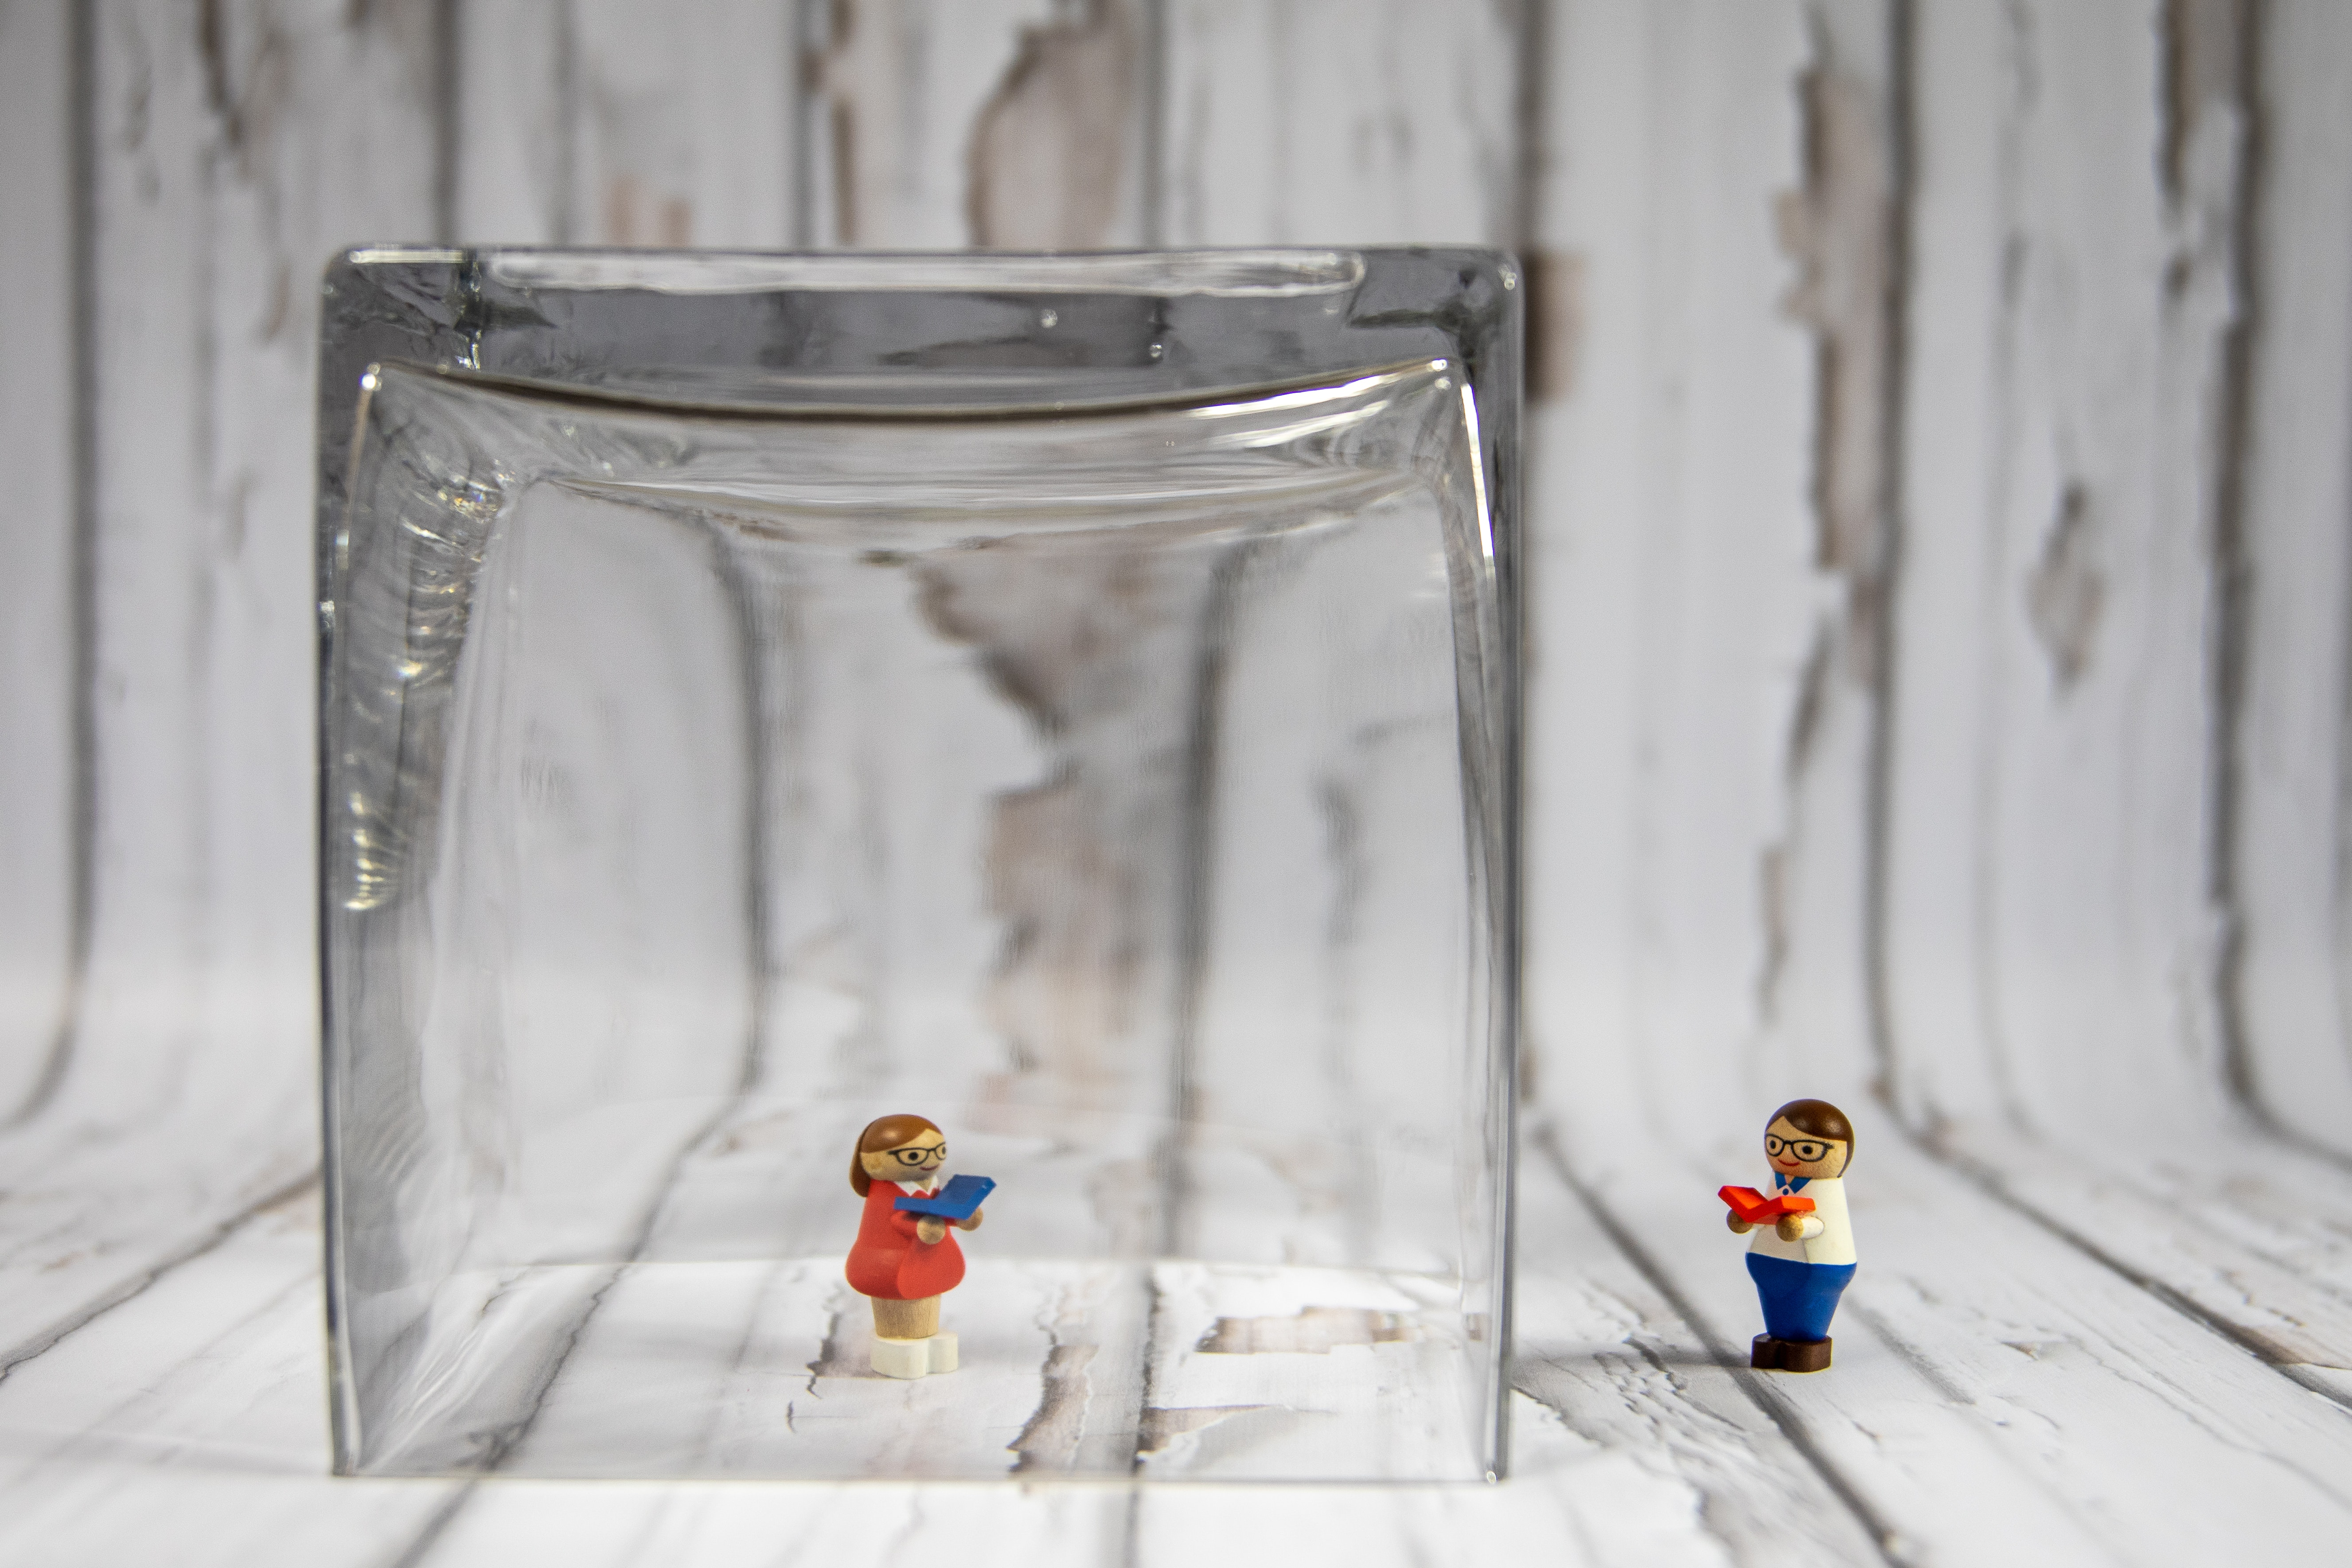 lego-toy-in-clear-glass-container-3971083.jpg